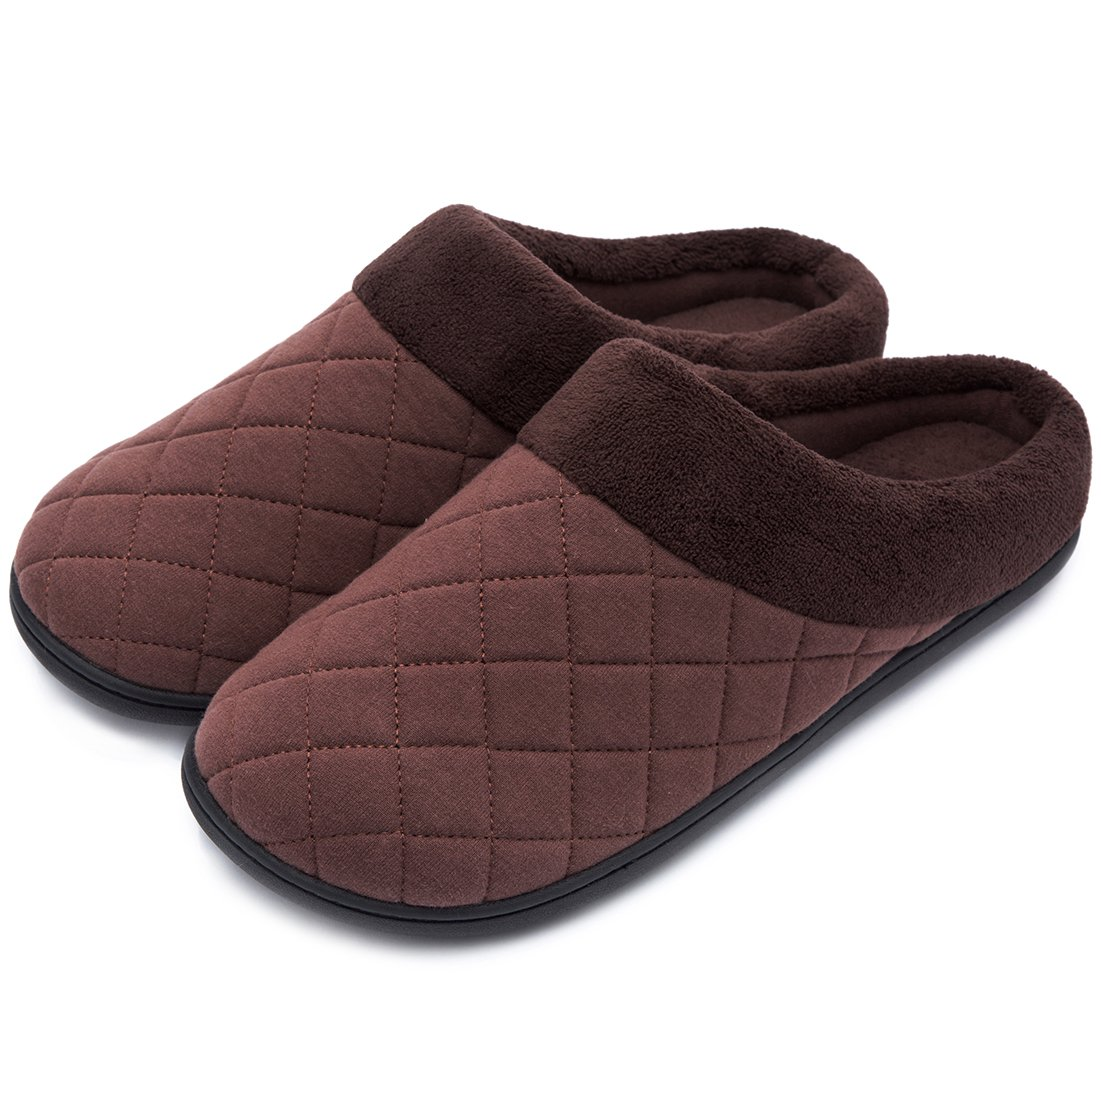 Men's Comfort Quilted Memory Foam Fleece Lining House Slippers Slip On Clog House Shoes (X-Large / 13-14 D(M) US, Coffee)